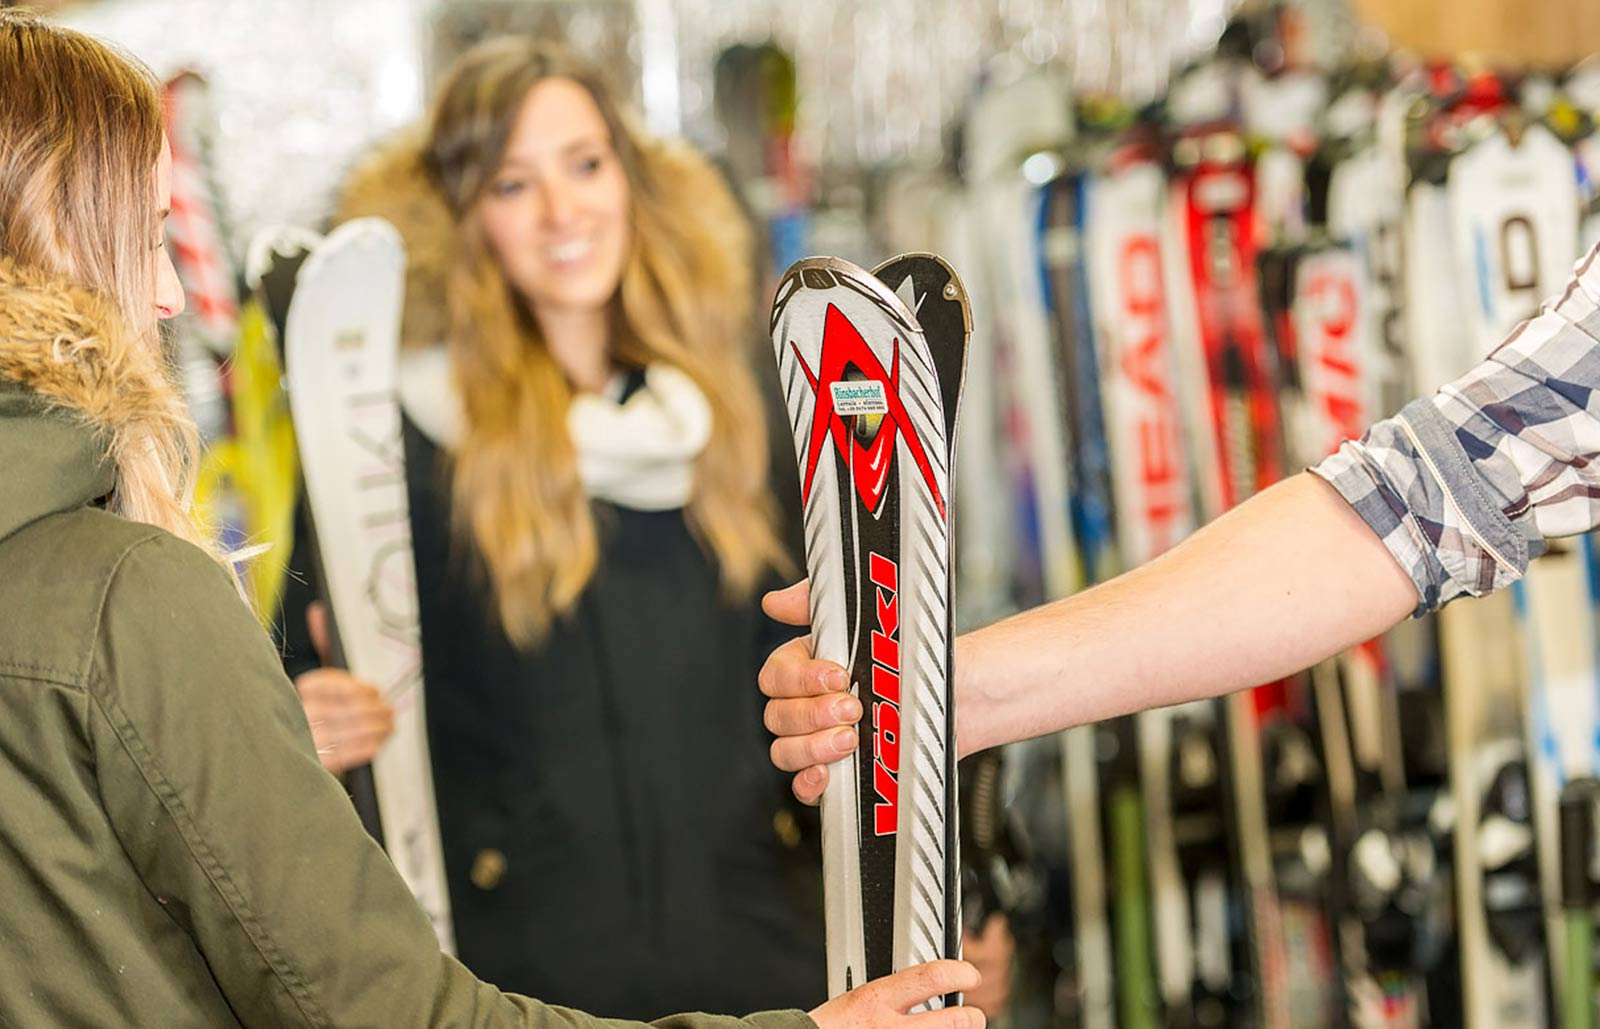 A girl rents some ski equipment in the ski rental in Rinsbacherhof.